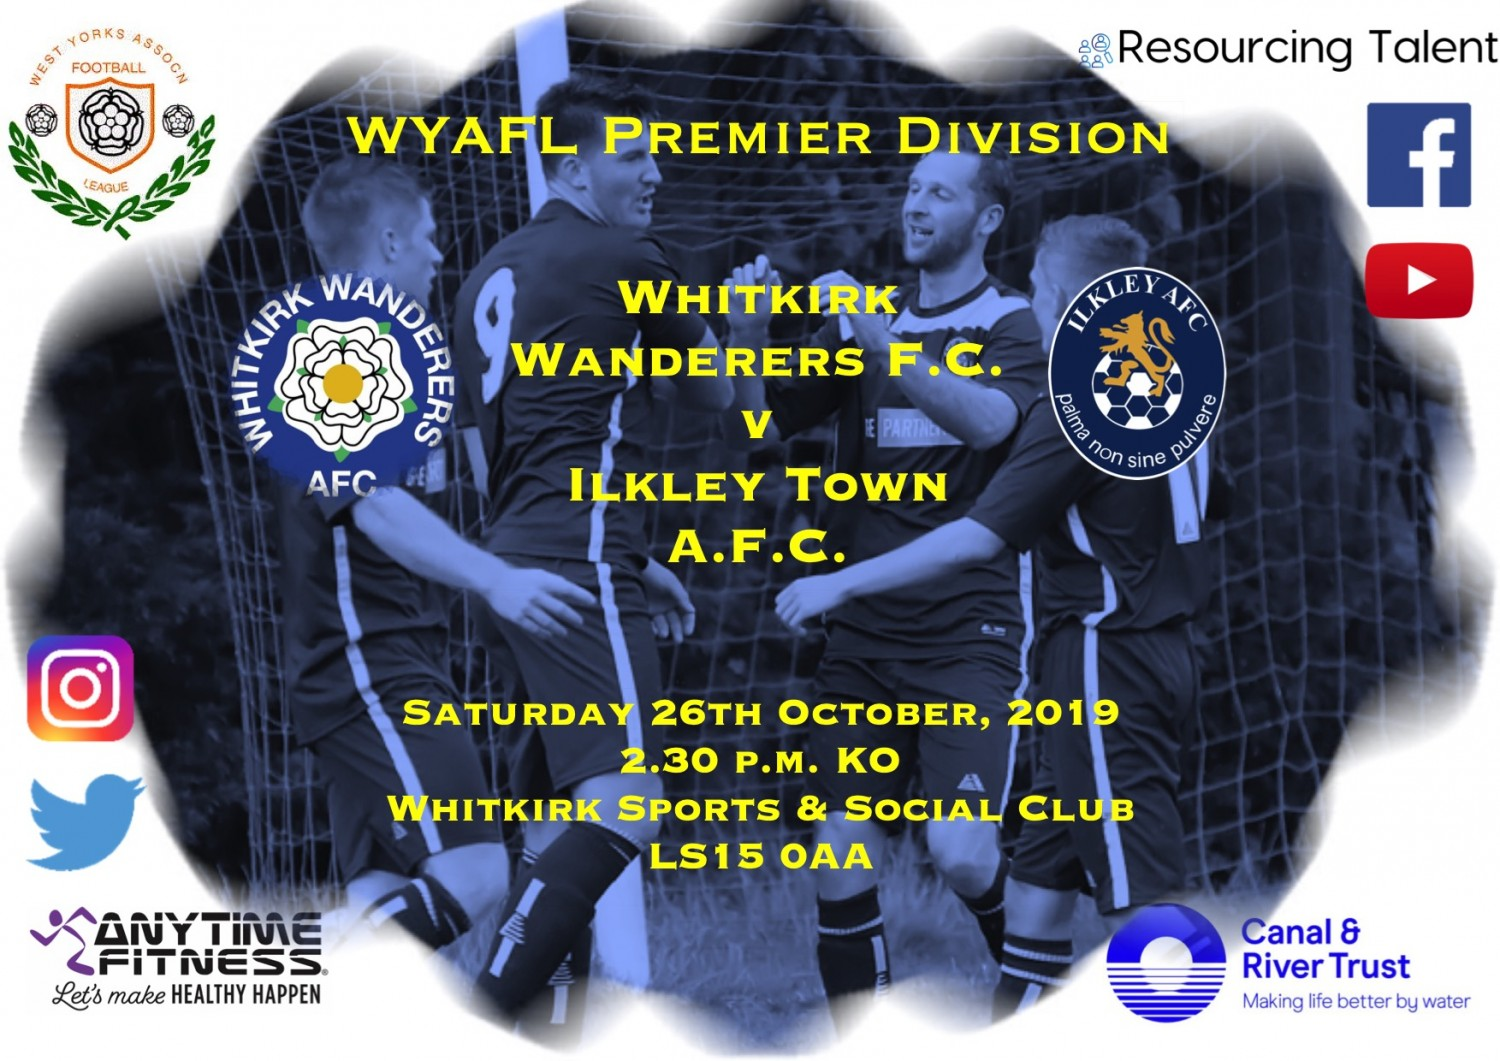 Match Preview: Whitkirk Wanderers FC v Ilkley Town AFC